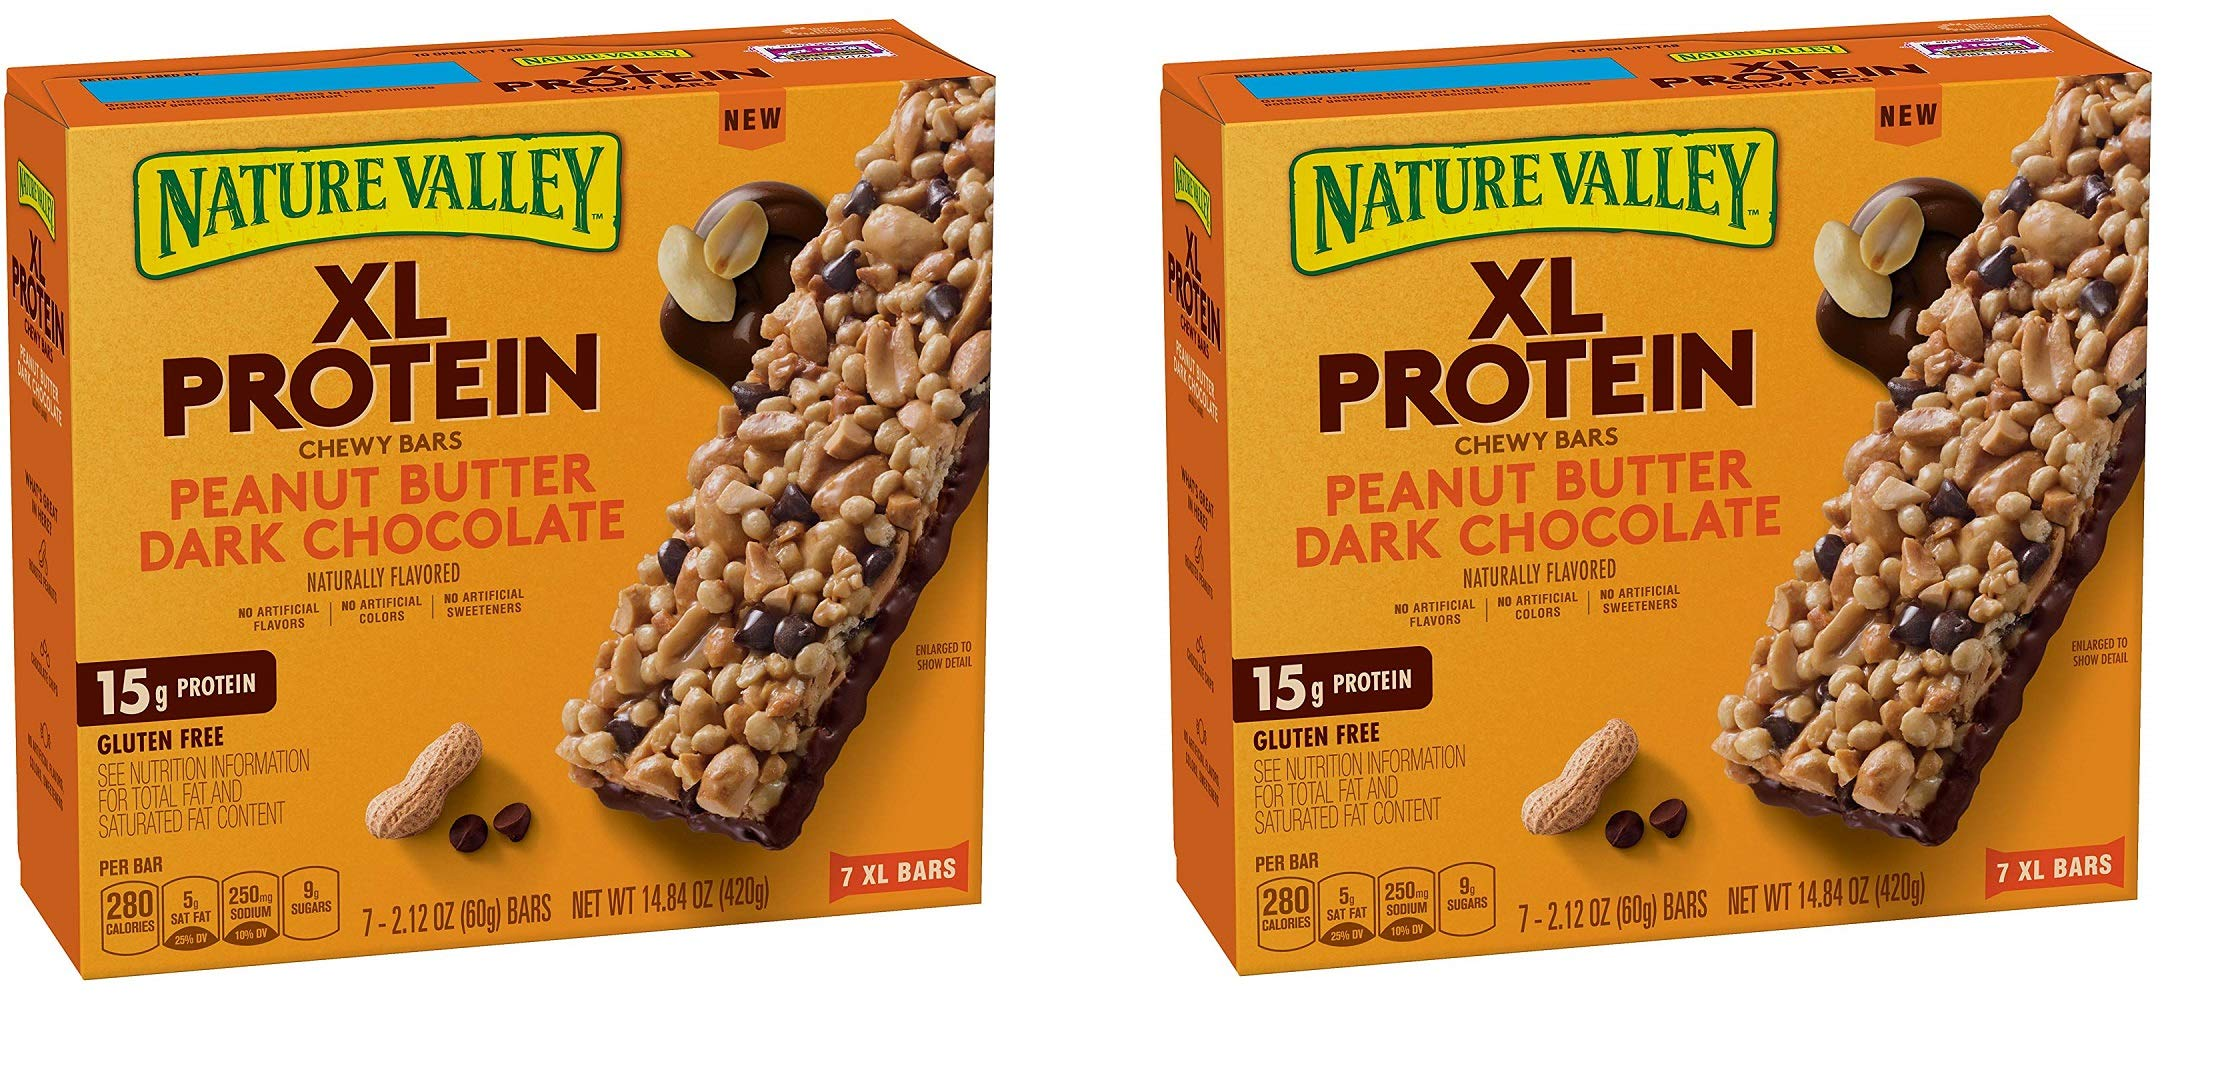 Nature Valley Chewy Granola Bar, XL Protein, Gluten Free, Peanut Butter Dark Chocolate, 7 Bars, 2.12 oz, 42 Bars (2 Boxes)